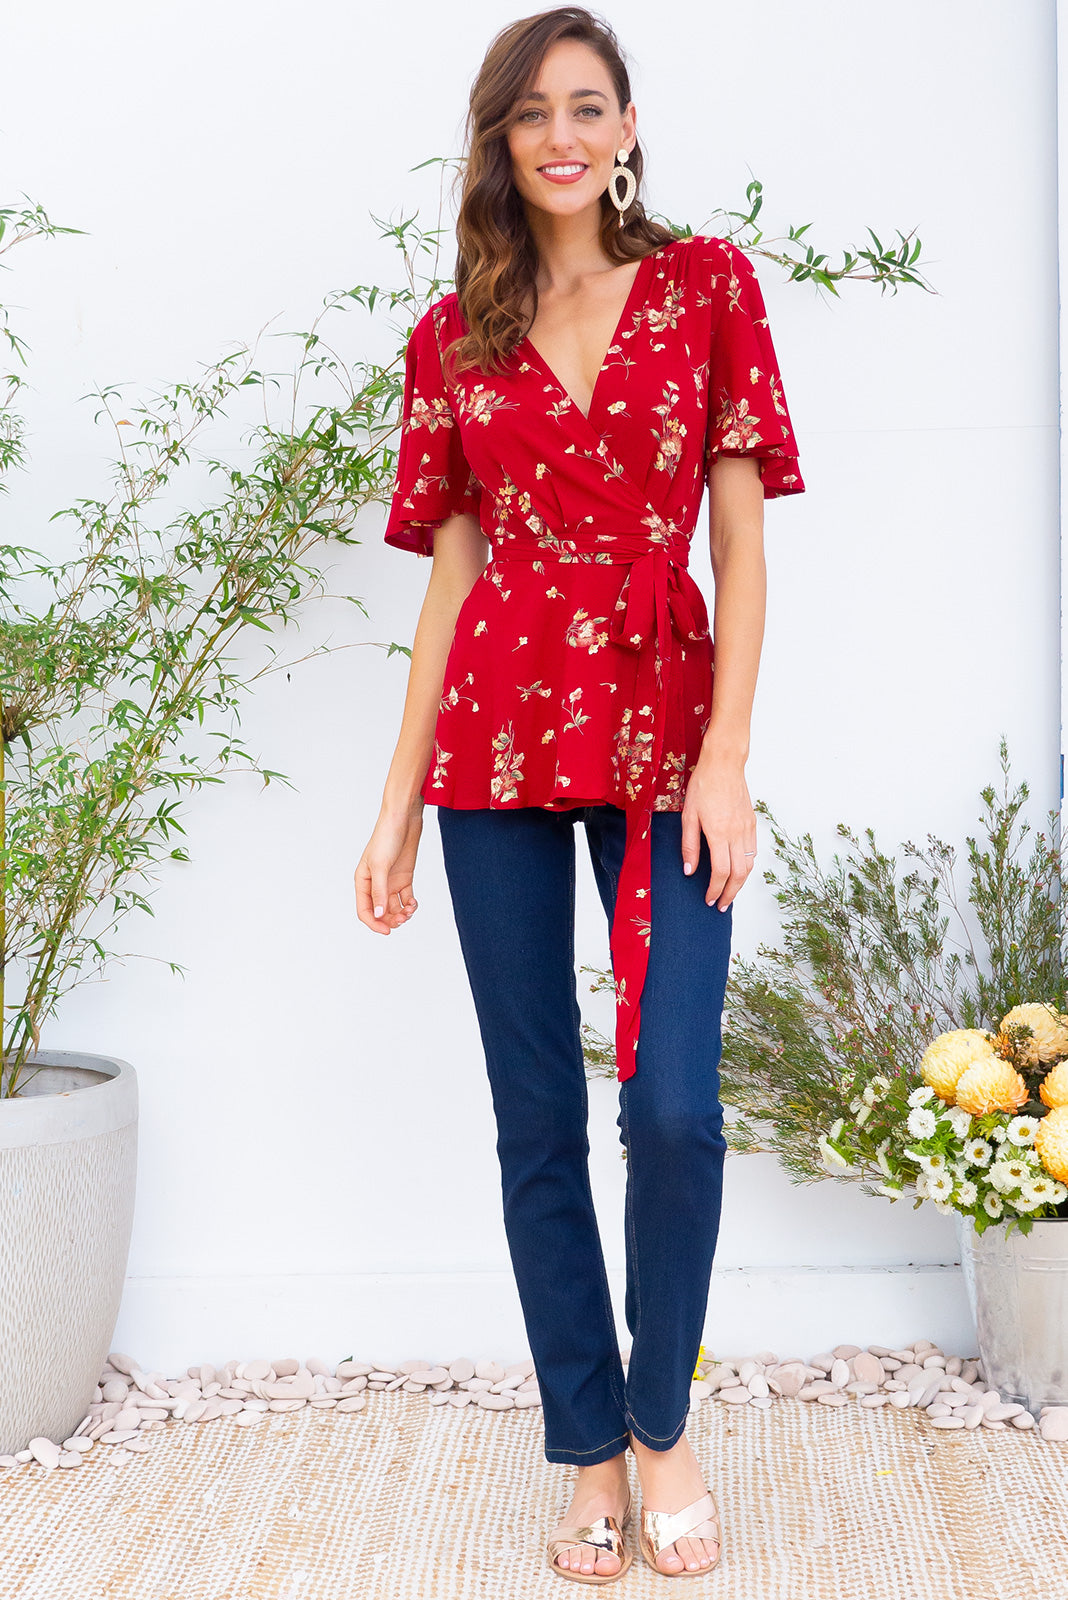 Delta Red Daze Wrap Top in a bright red floral  print has petal sleeve and wrap around waist